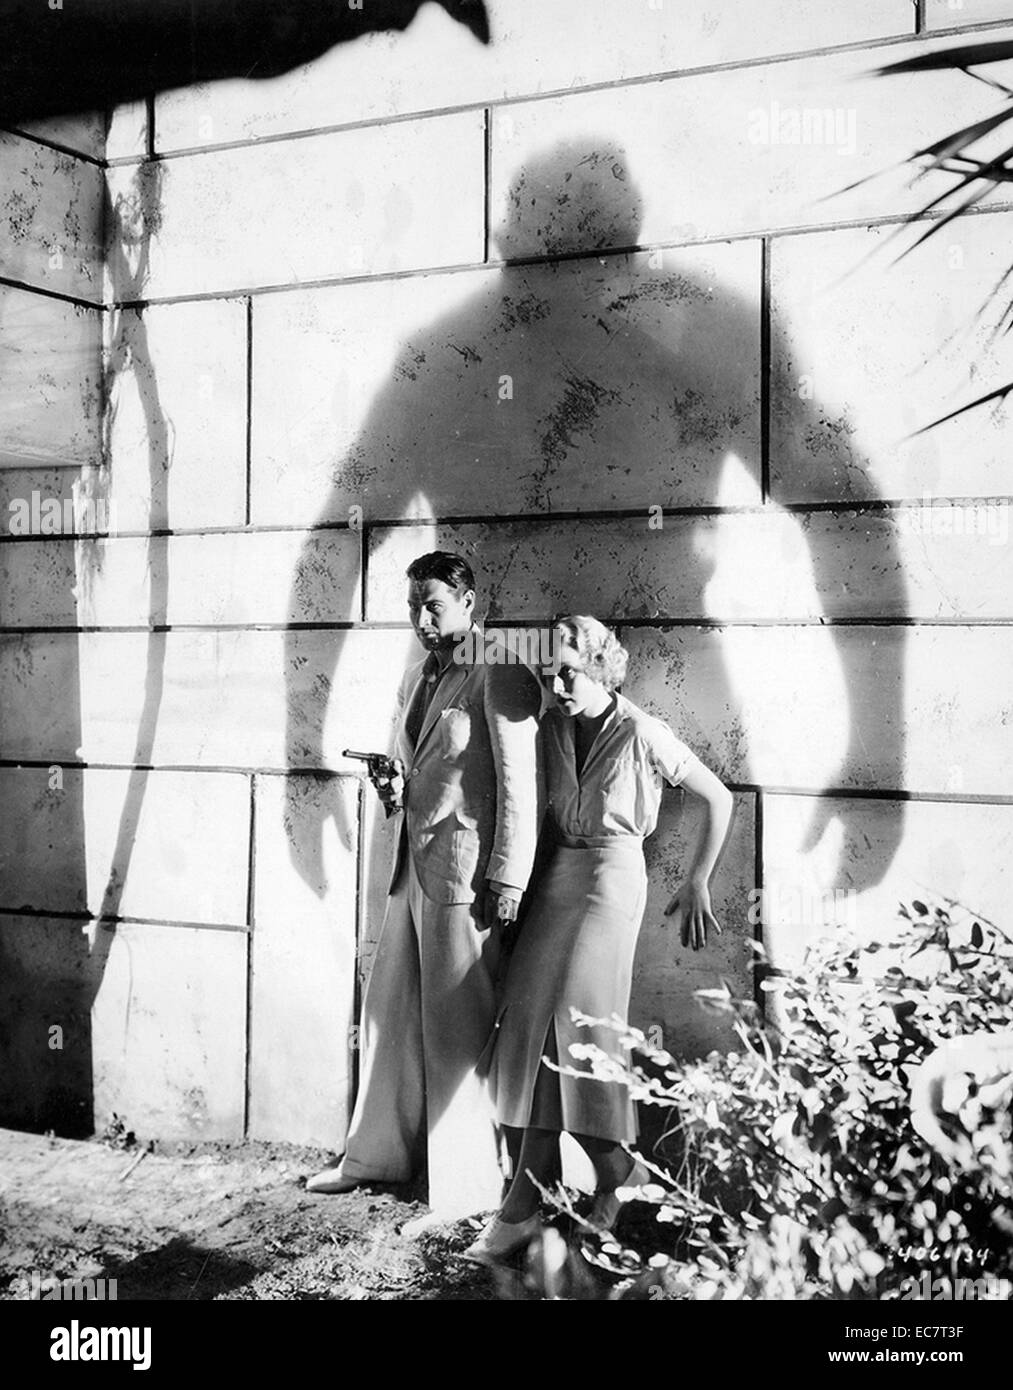 Island of Lost Souls is a 1932 American science fiction horror film starring Charles Laughton, Richard Arlen, Leila Stock Photo